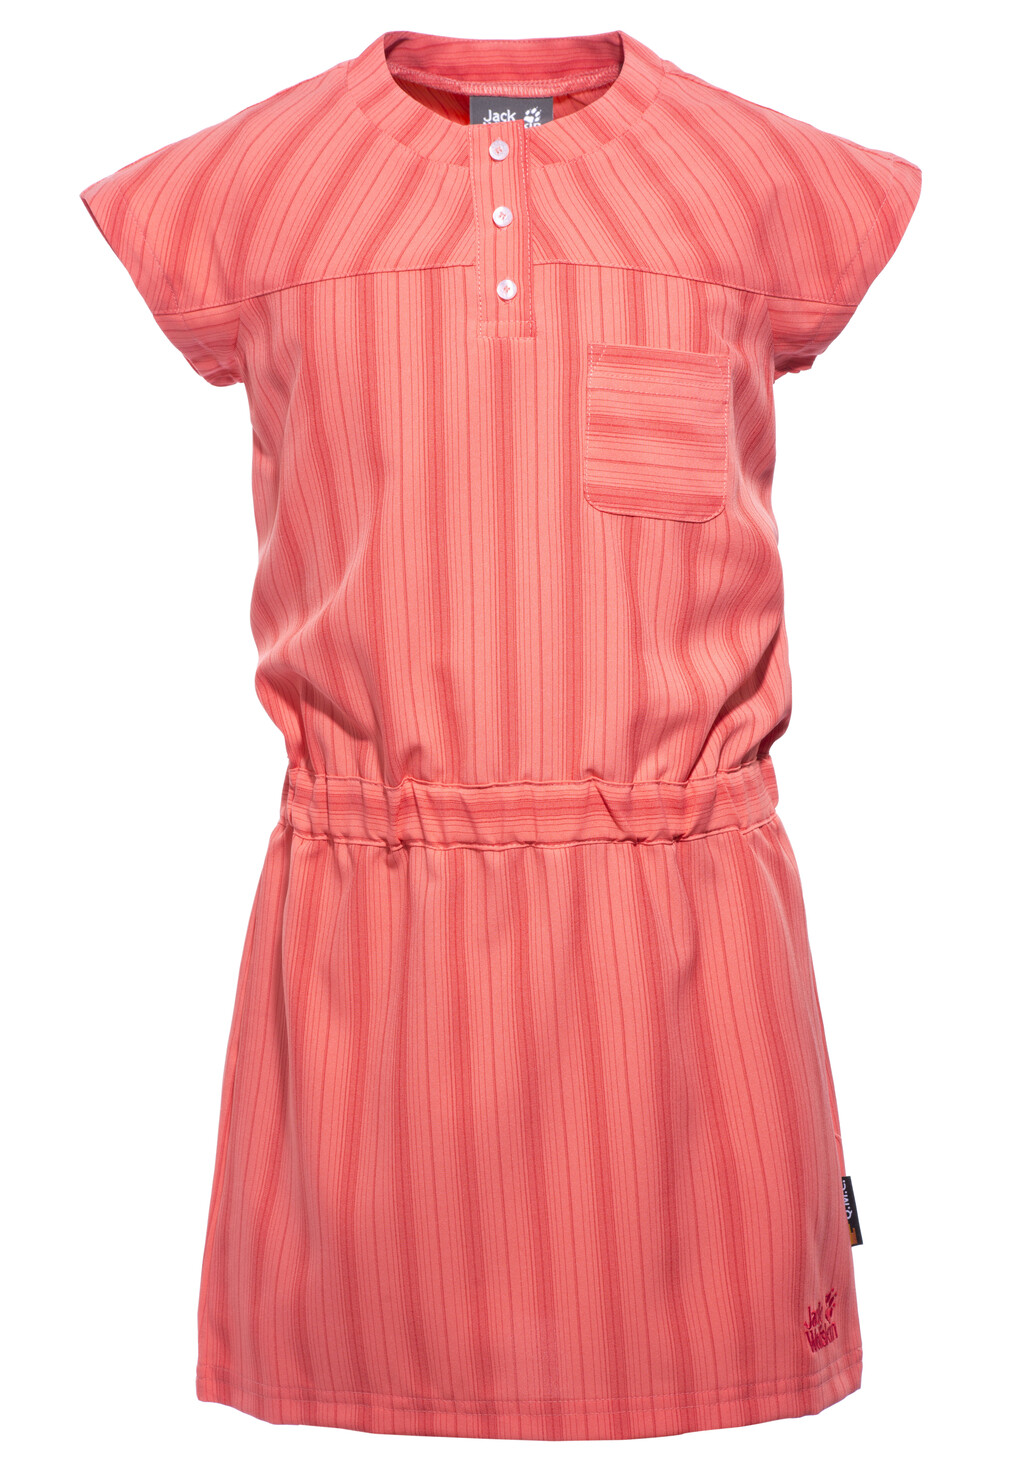 Jack Wolfskin Airy Summer Dress Girls grapefruit stripes 104 Kleid~Rock~Bekleidung~outdoor~kinderbekleidung~outdoor kleid~outdoor rock~outdoor kleid mädchen~outdoor rock mädchen~kleid mädchen~rock mädchen